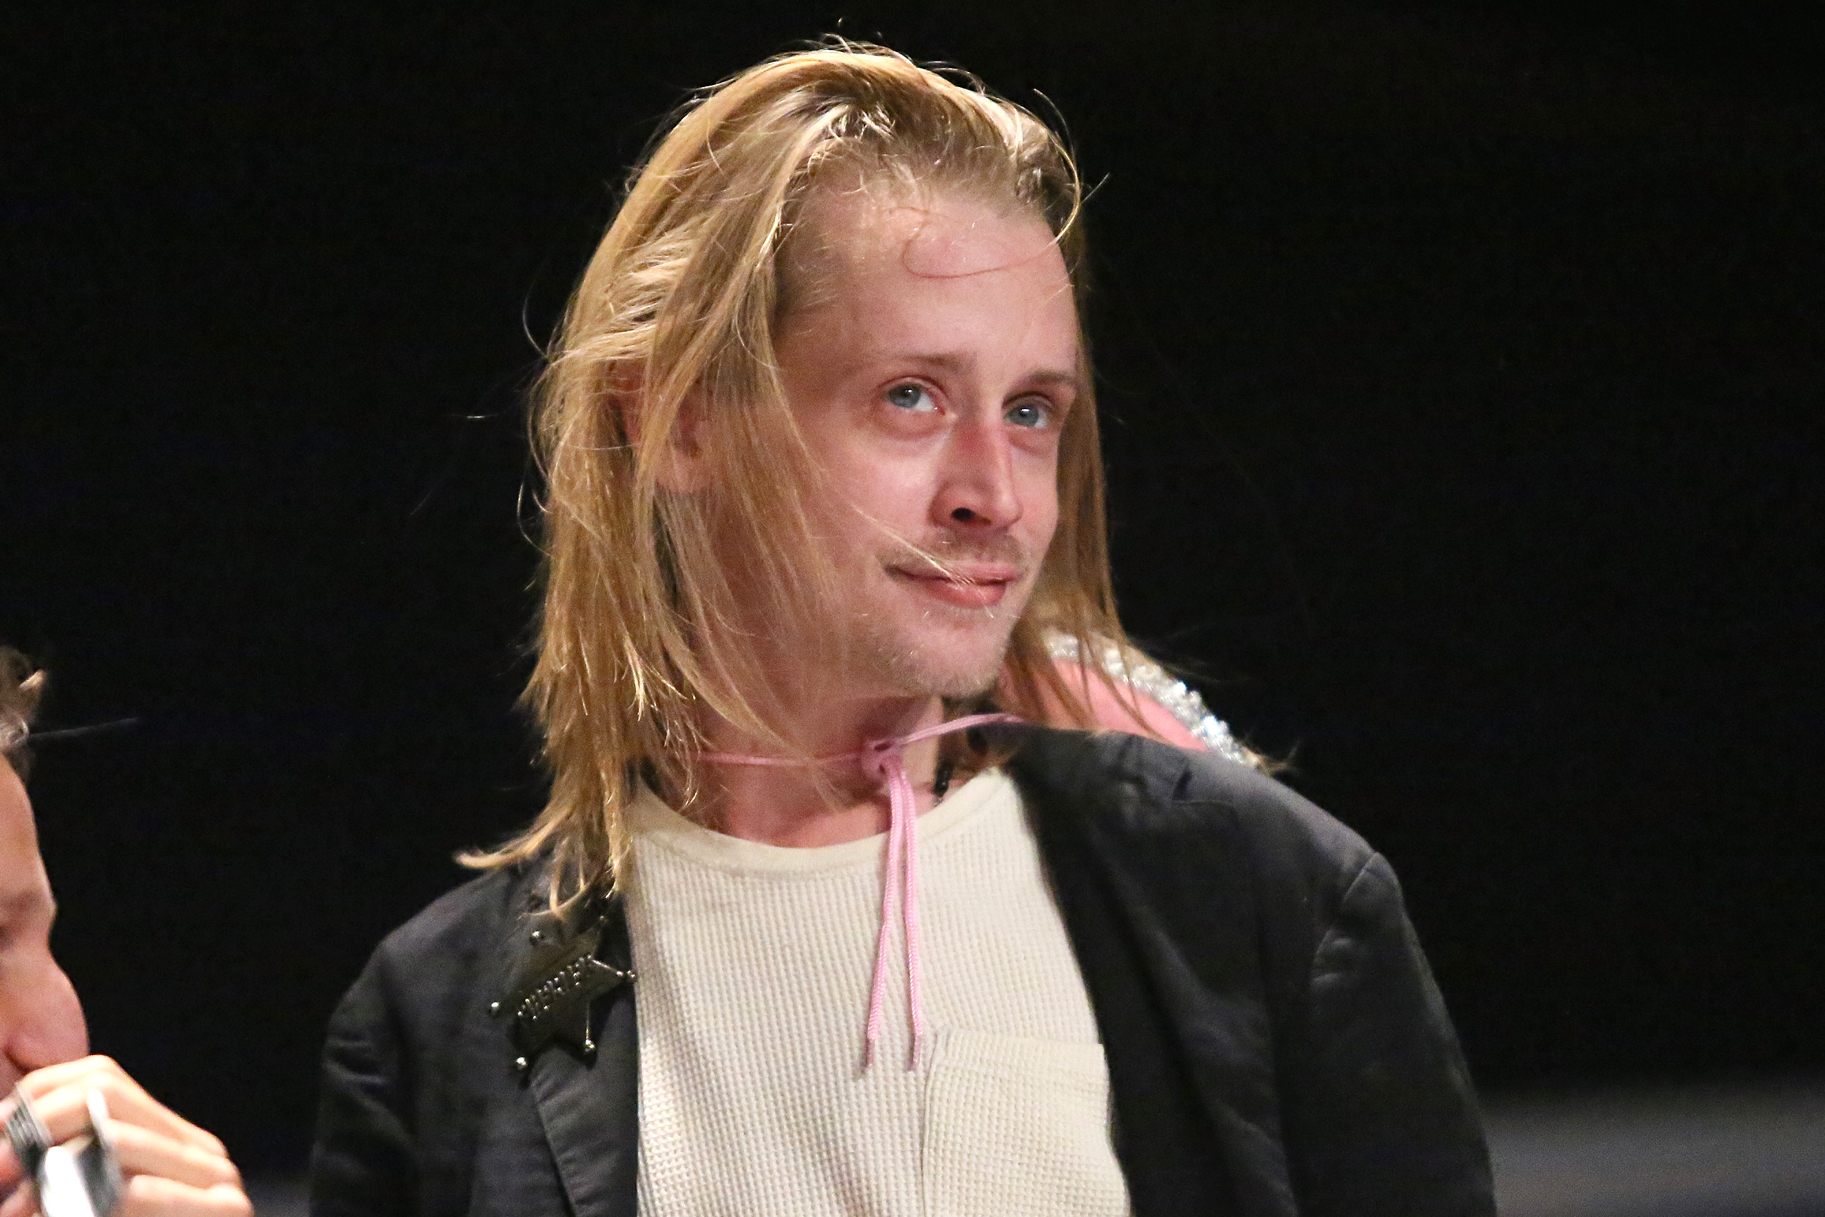 Macaulay Culkin Hot Makeover Photos The Daily Dish